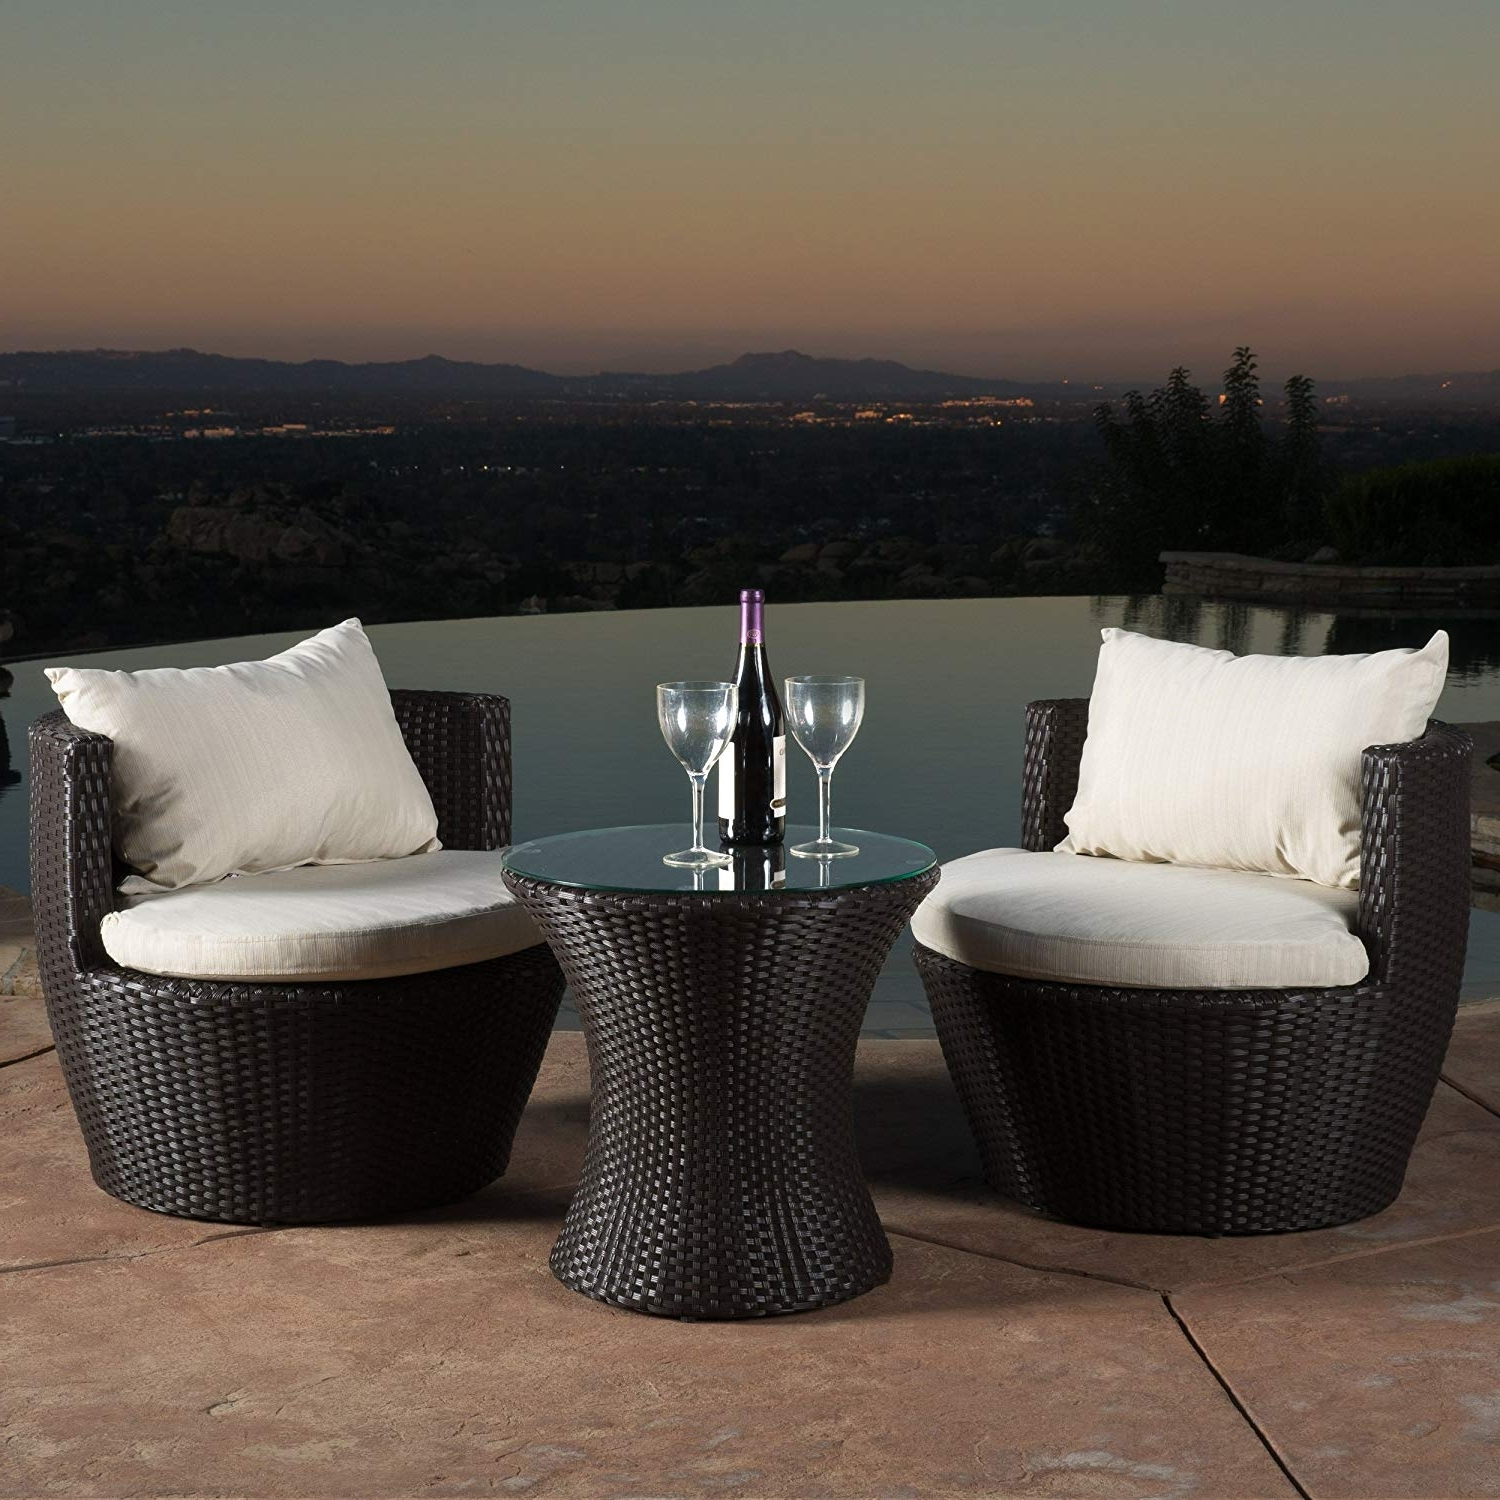 3 Piece Patio Conversation Sets with regard to Current Amazon : Christopher Knight Home 296323 Kyoto 3 Piece Chat Set